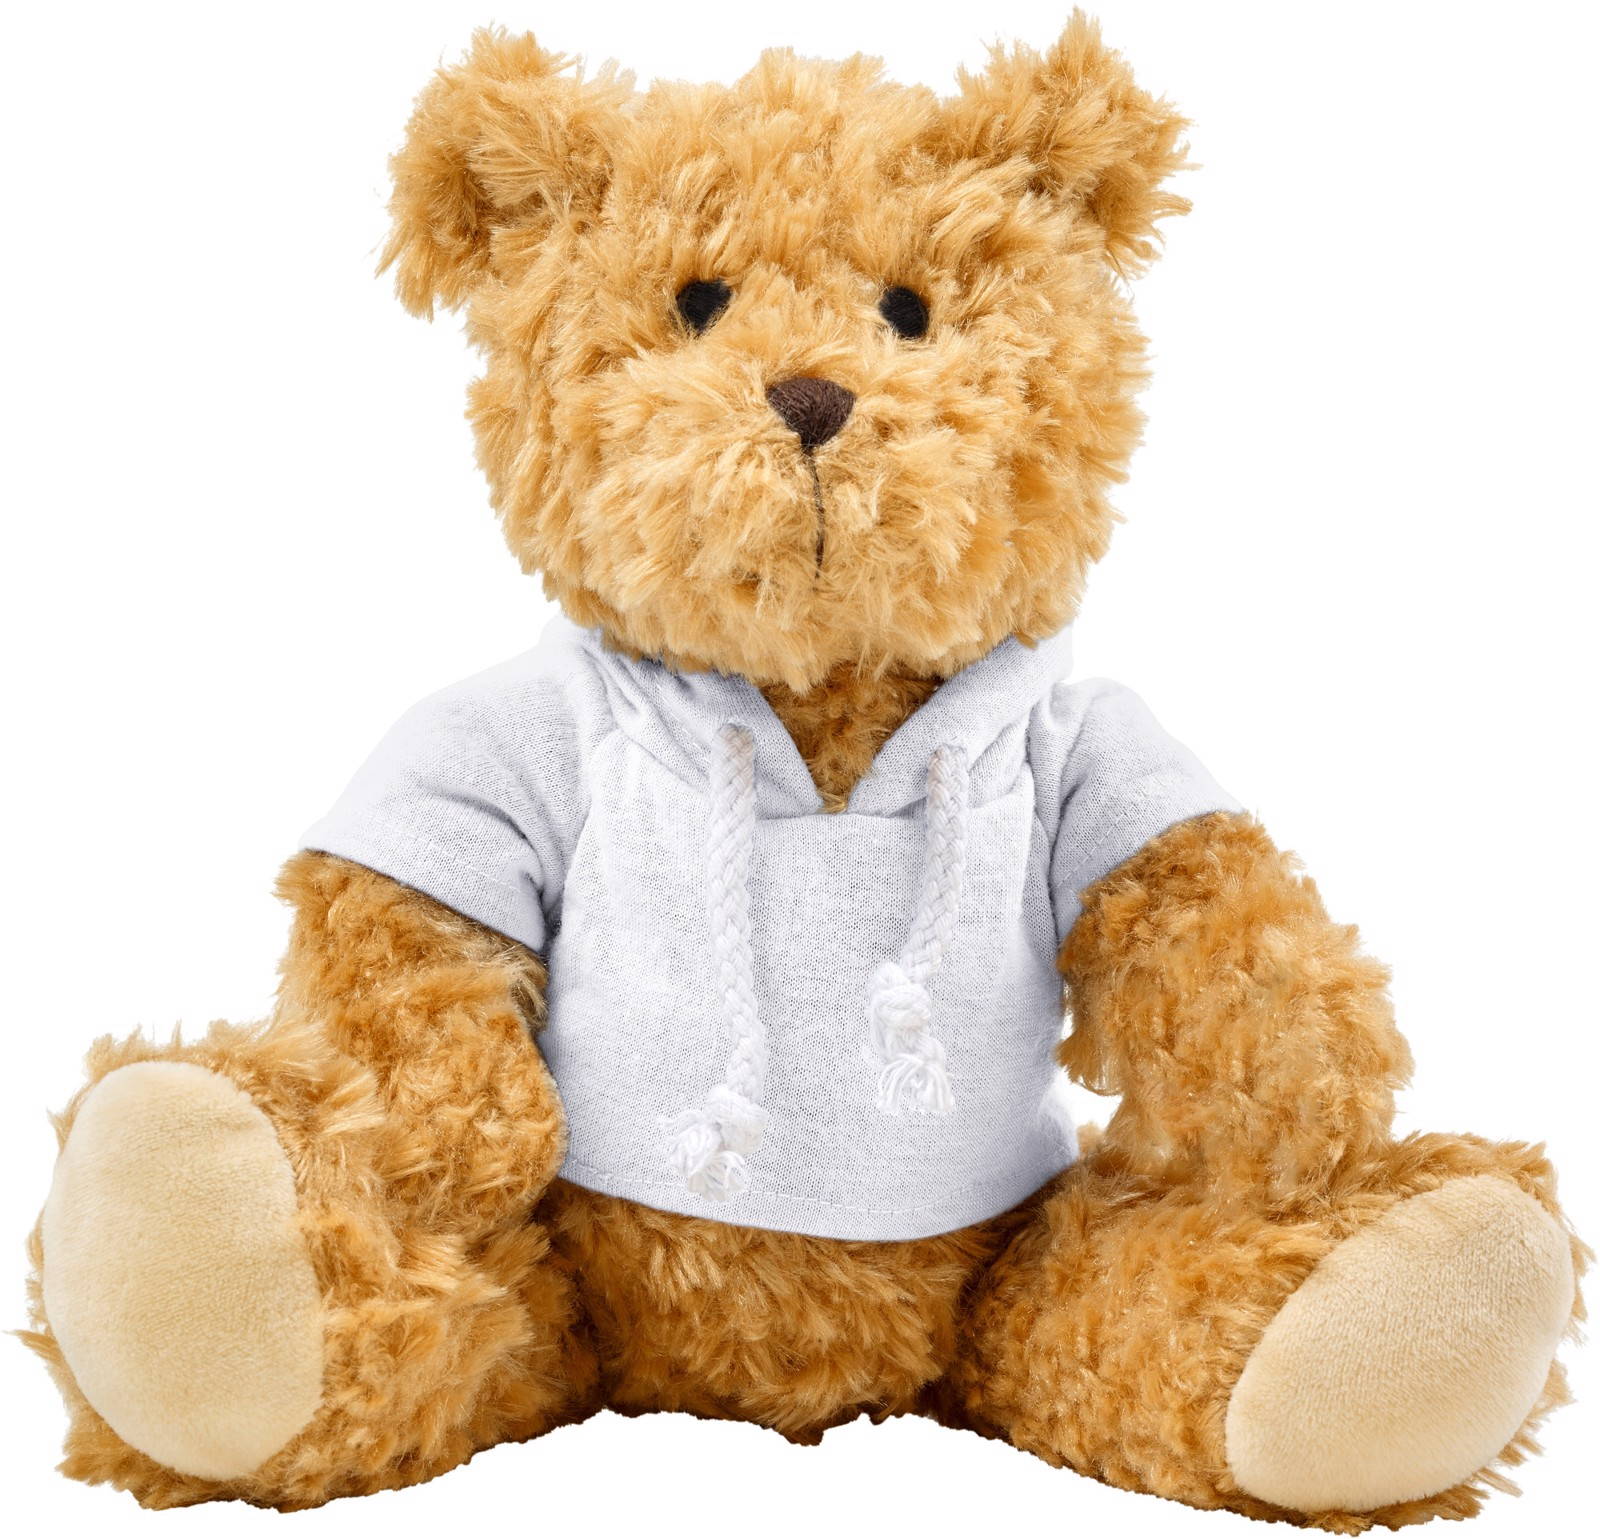 Plush teddy bear - White